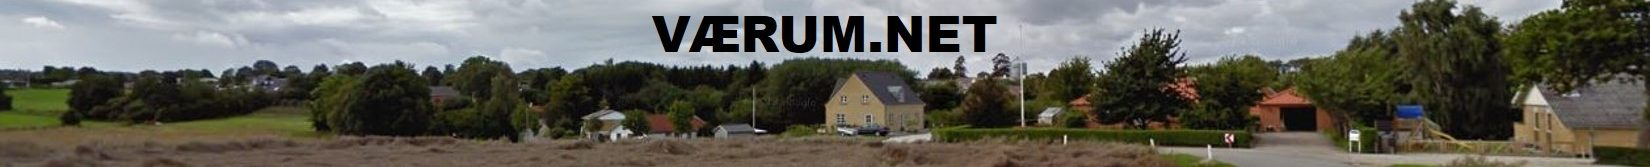 Værum.net